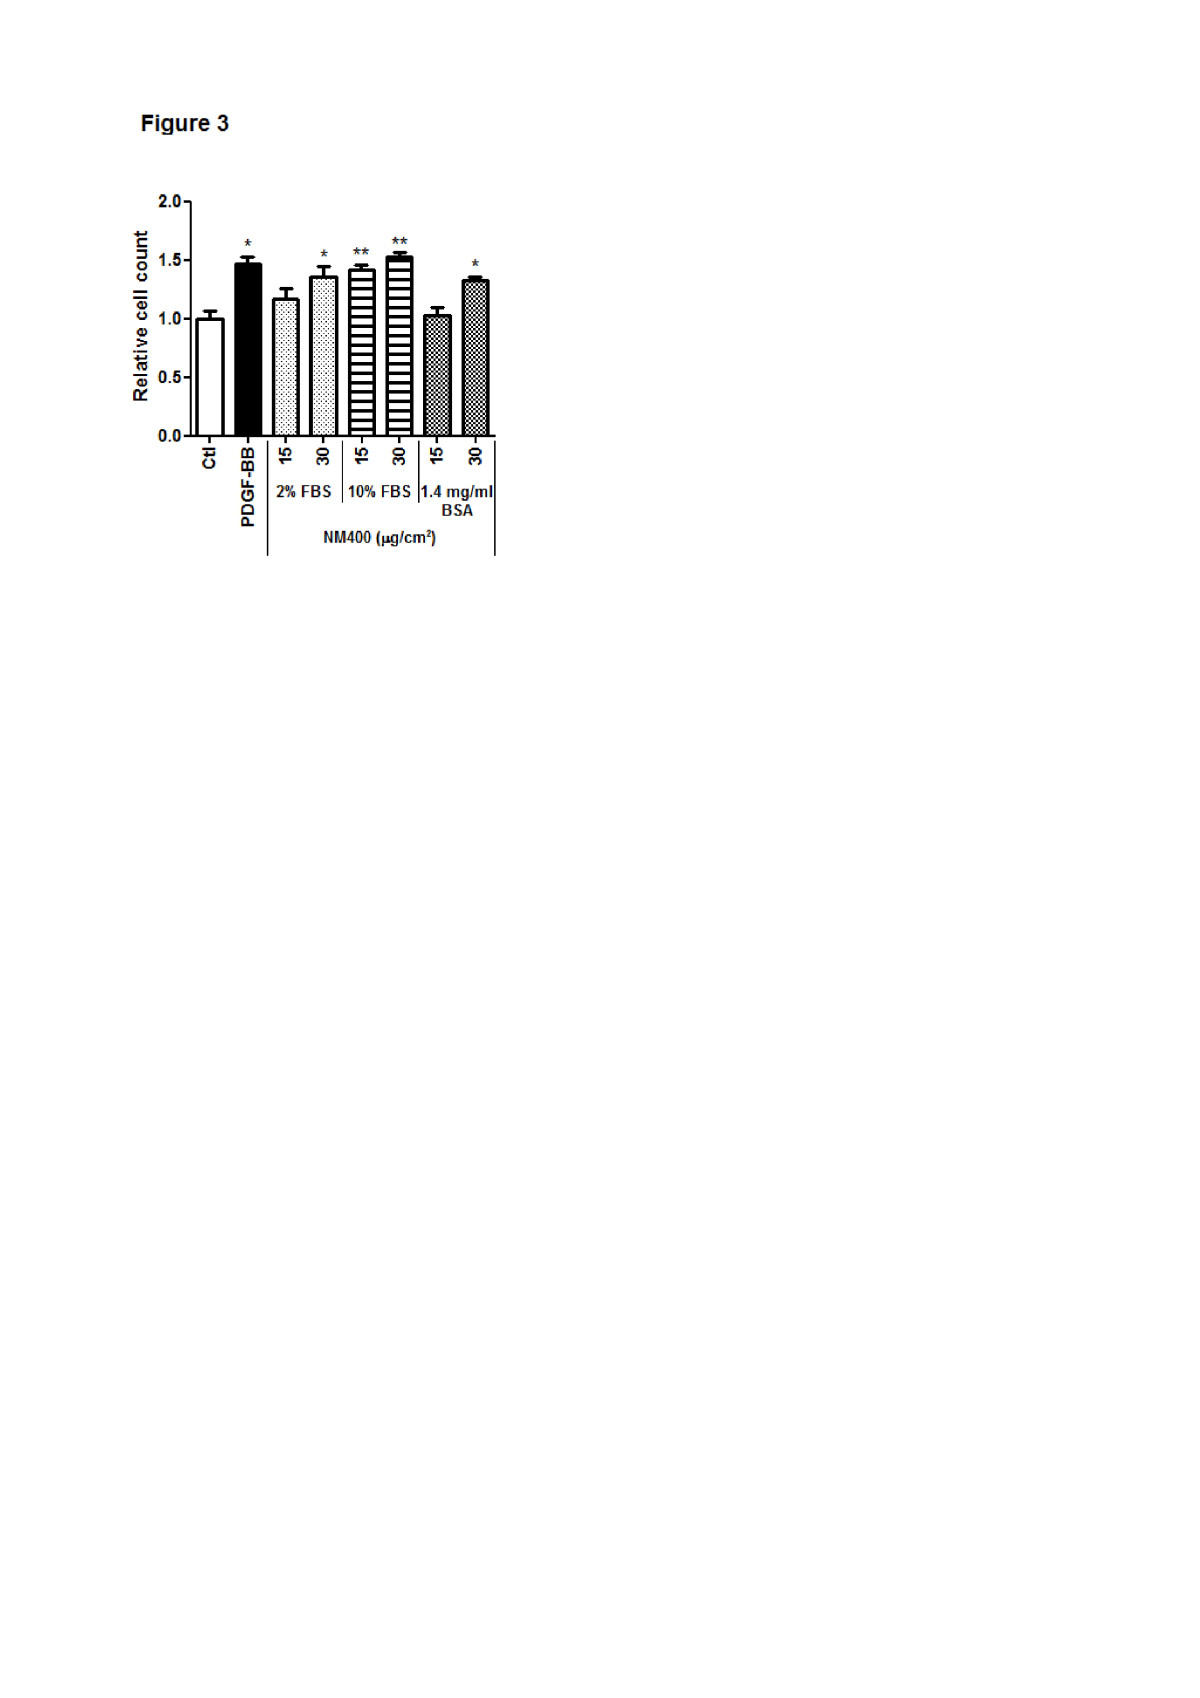 http://static-content.springer.com/image/art%3A10.1186%2F1743-8977-10-52/MediaObjects/12989_2013_Article_275_Fig3_HTML.jpg